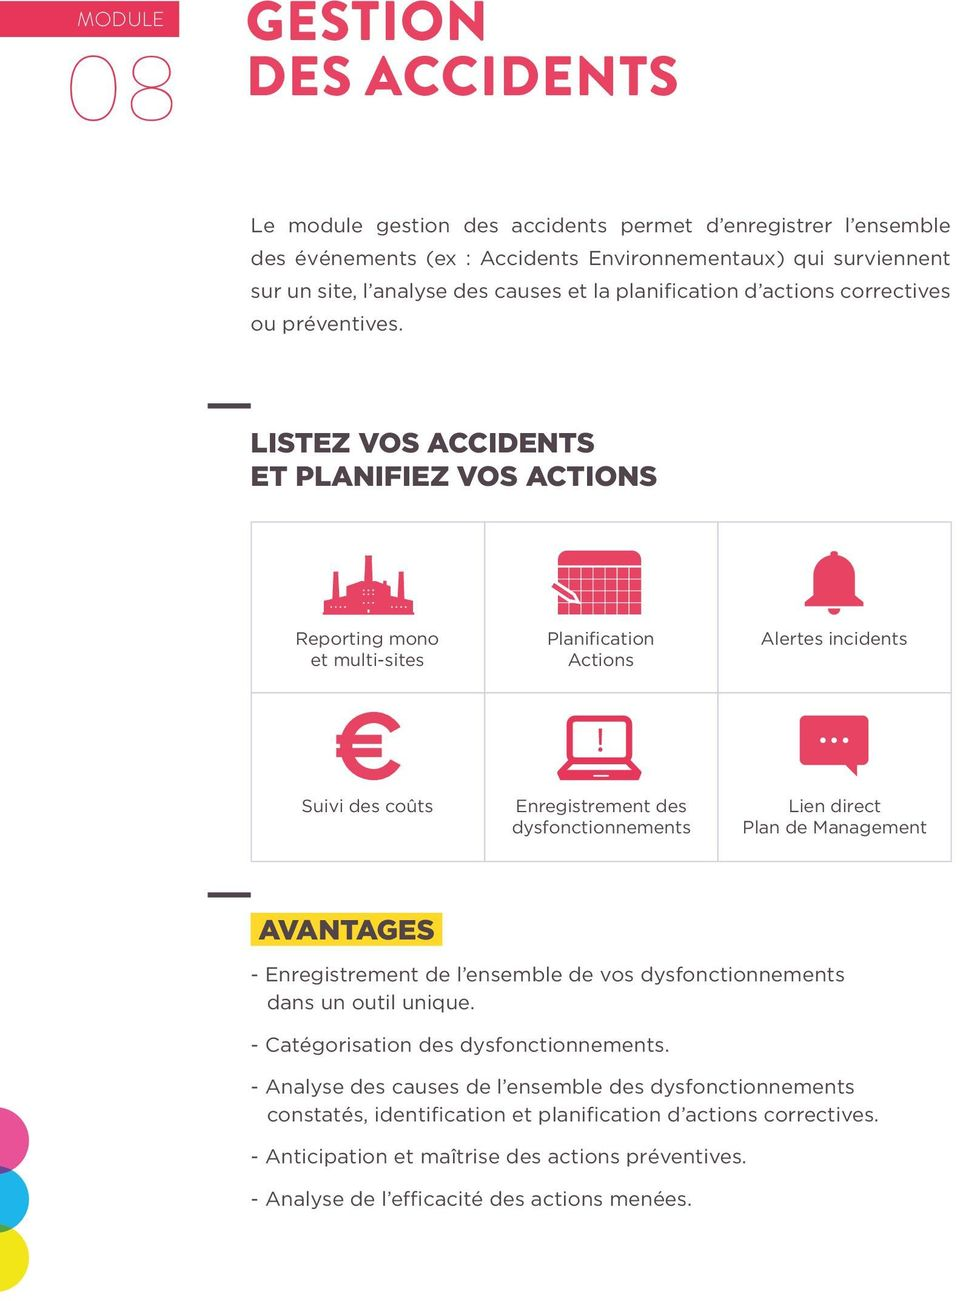 LISTEZ VOS ACCIDENTS ET PLANIFIEZ VOS ACTIONS Reporting mono Planification Actions Alertes incidents Suivi des coûts Enregistrement des dysfonctionnements Lien direct Plan de Management -